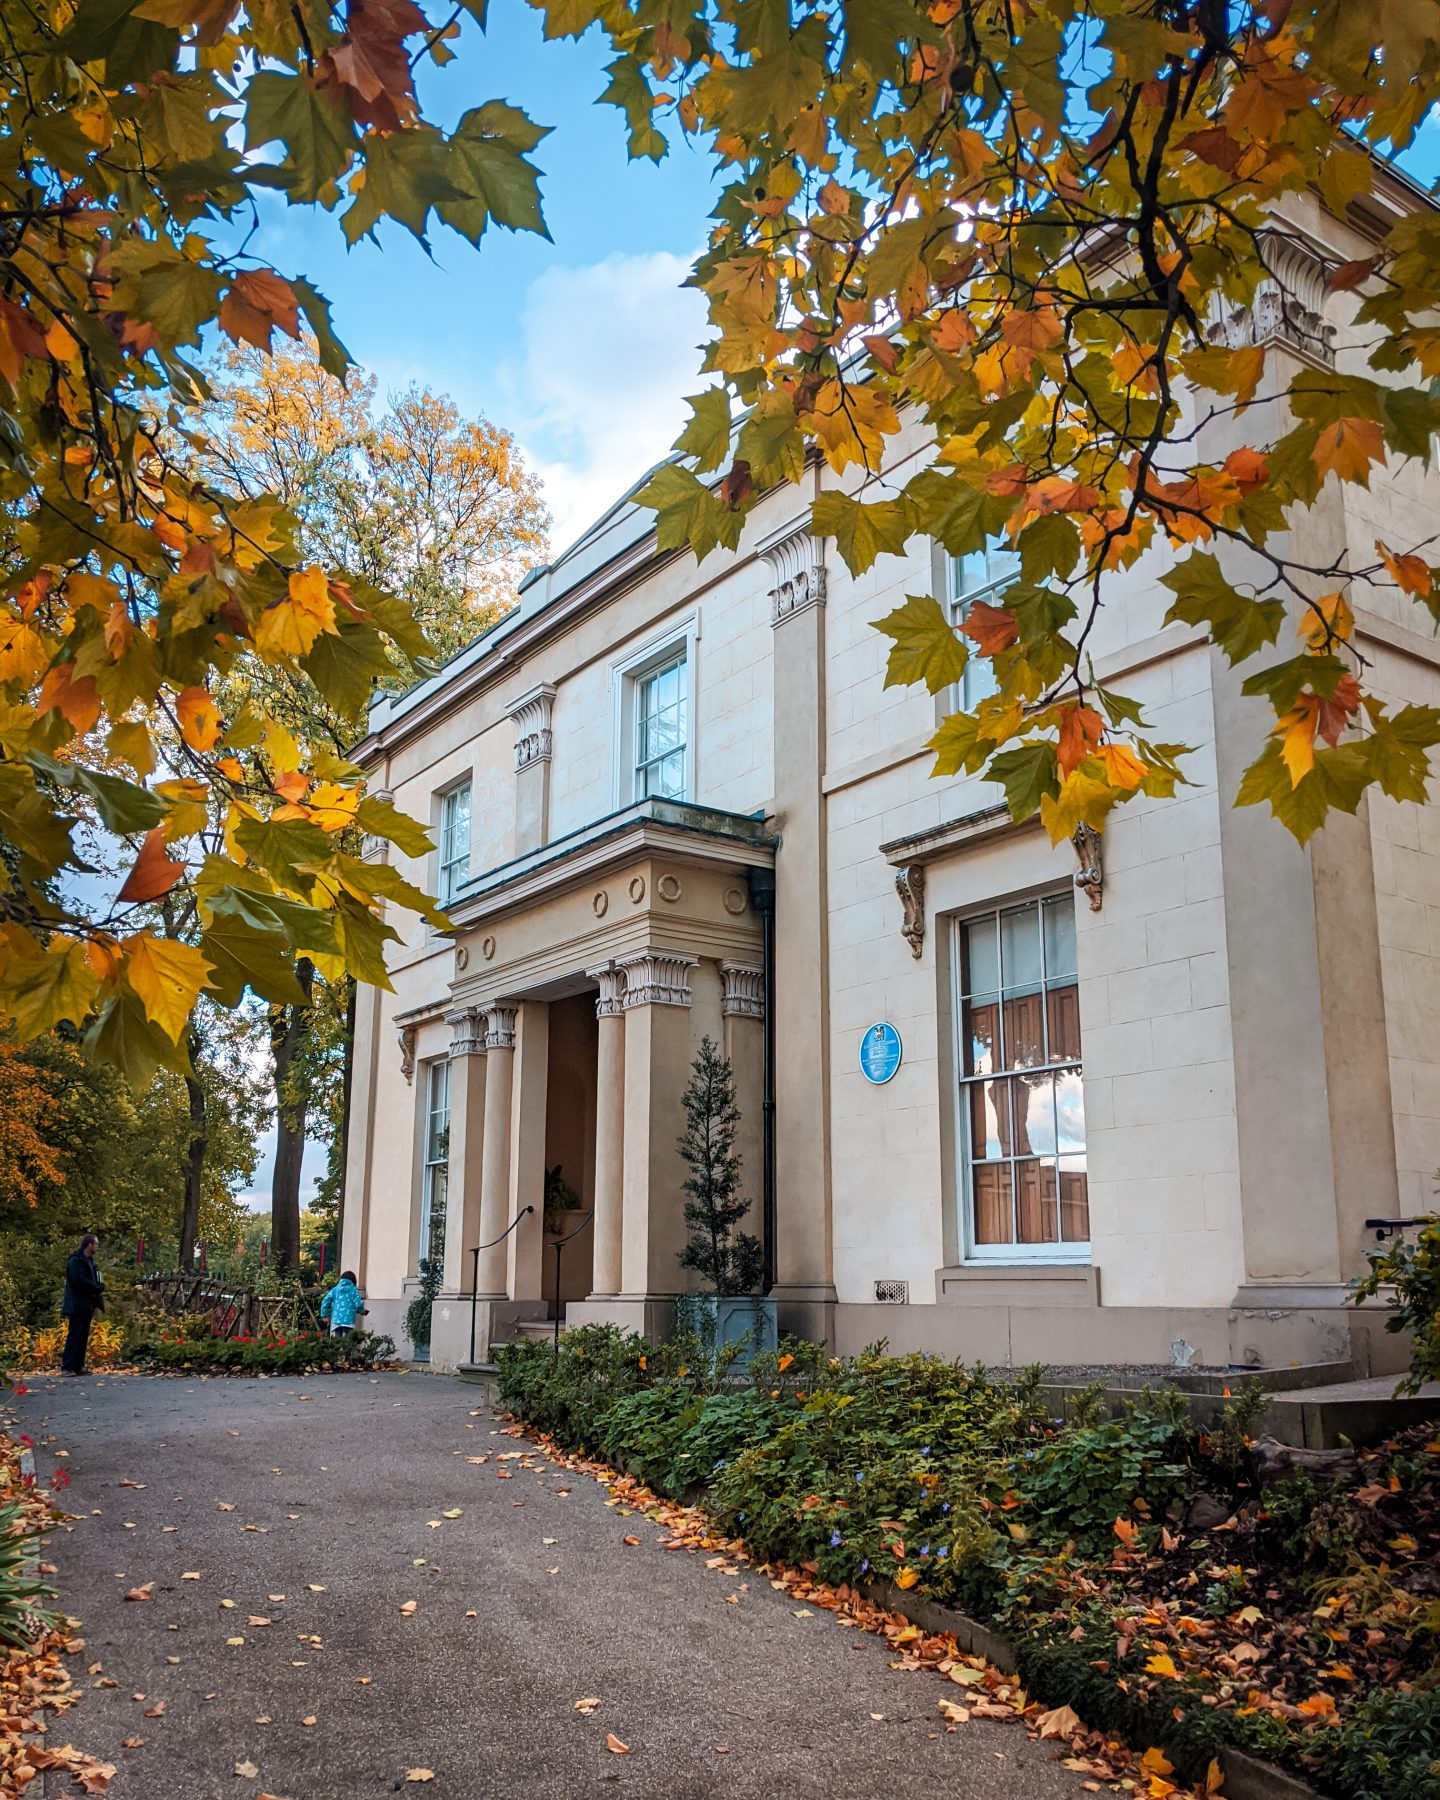 Elizabeth Gaskell's House surrounded by Autumn leaves